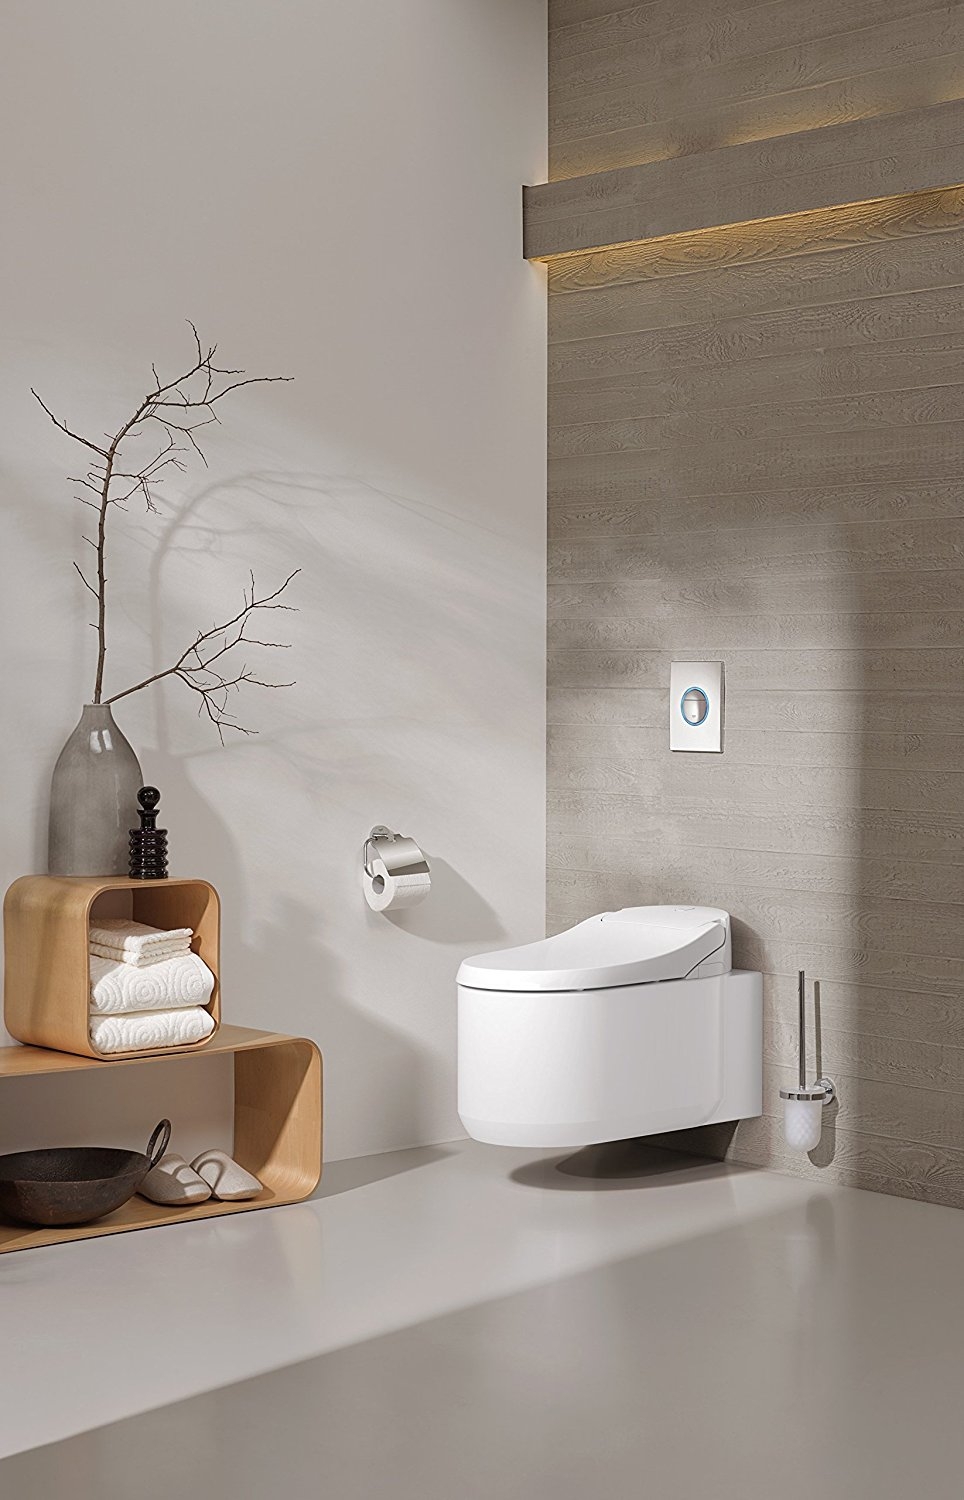 GROHE-Arena-39354Sh0-4